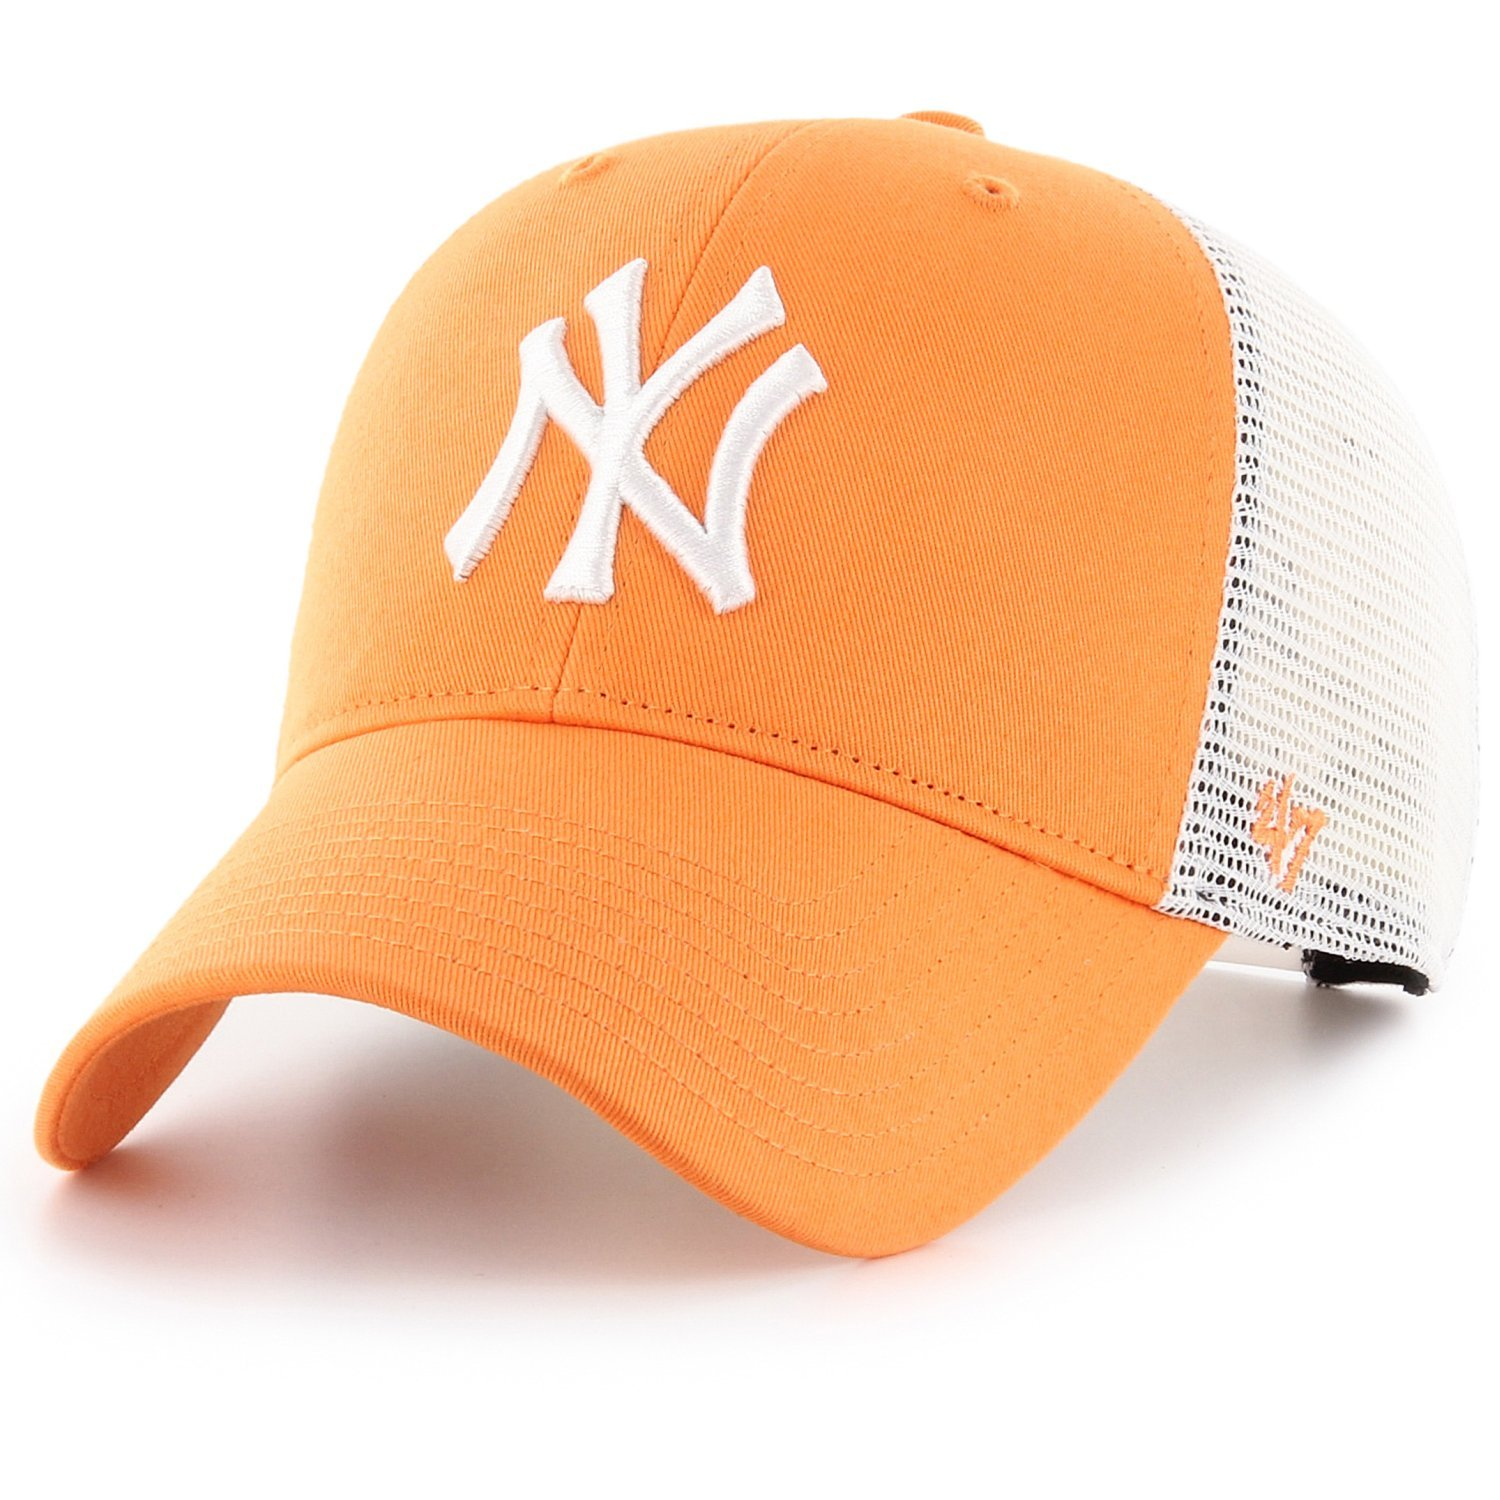 47 Brand Trucker Cap - FLAGSHIP New York Yankees mango 193234775193 ... 8ff6860999f